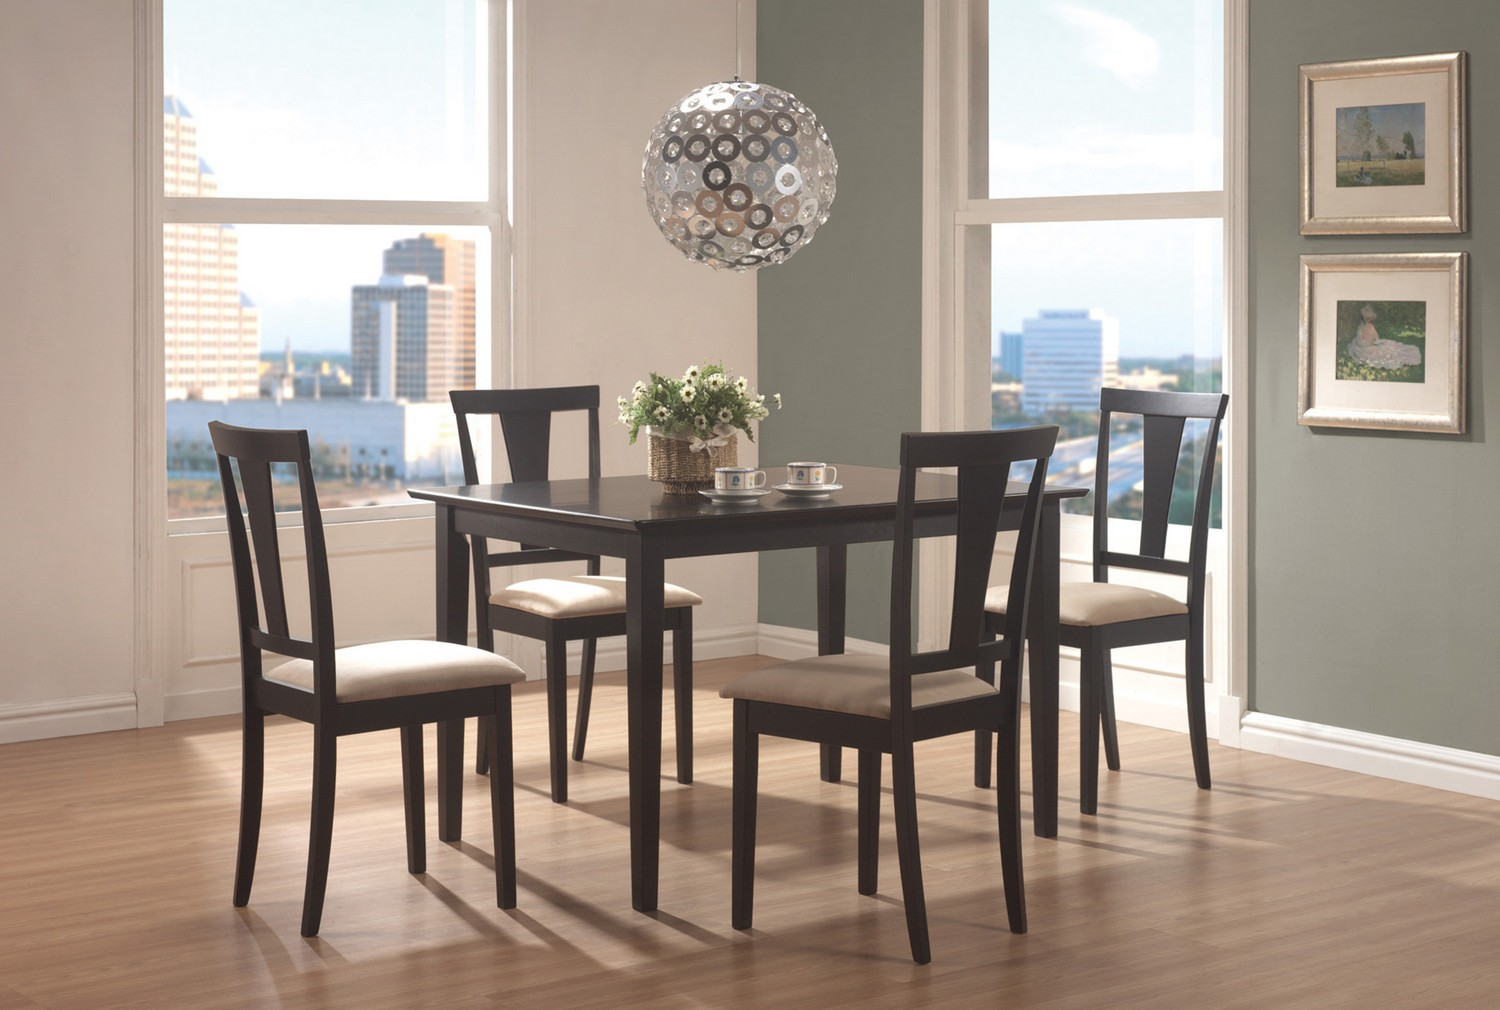 Coaster 150181N 5-Piece Dining Set - Black/Beige Microfiber Fabric